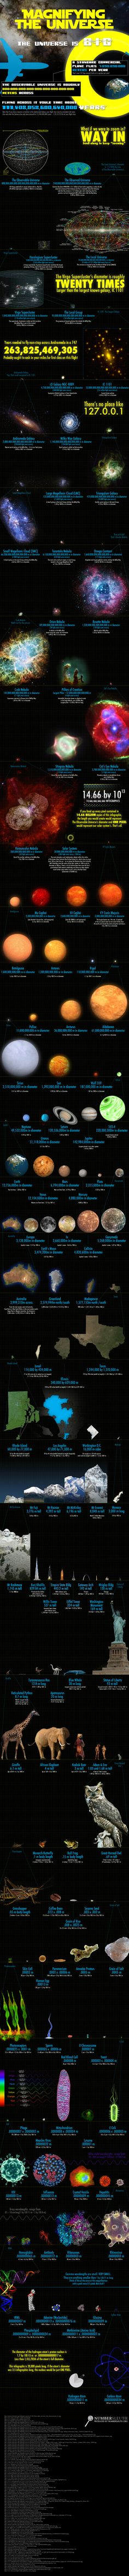 how-big-is-the-universe-large.jpg (1000×20000)